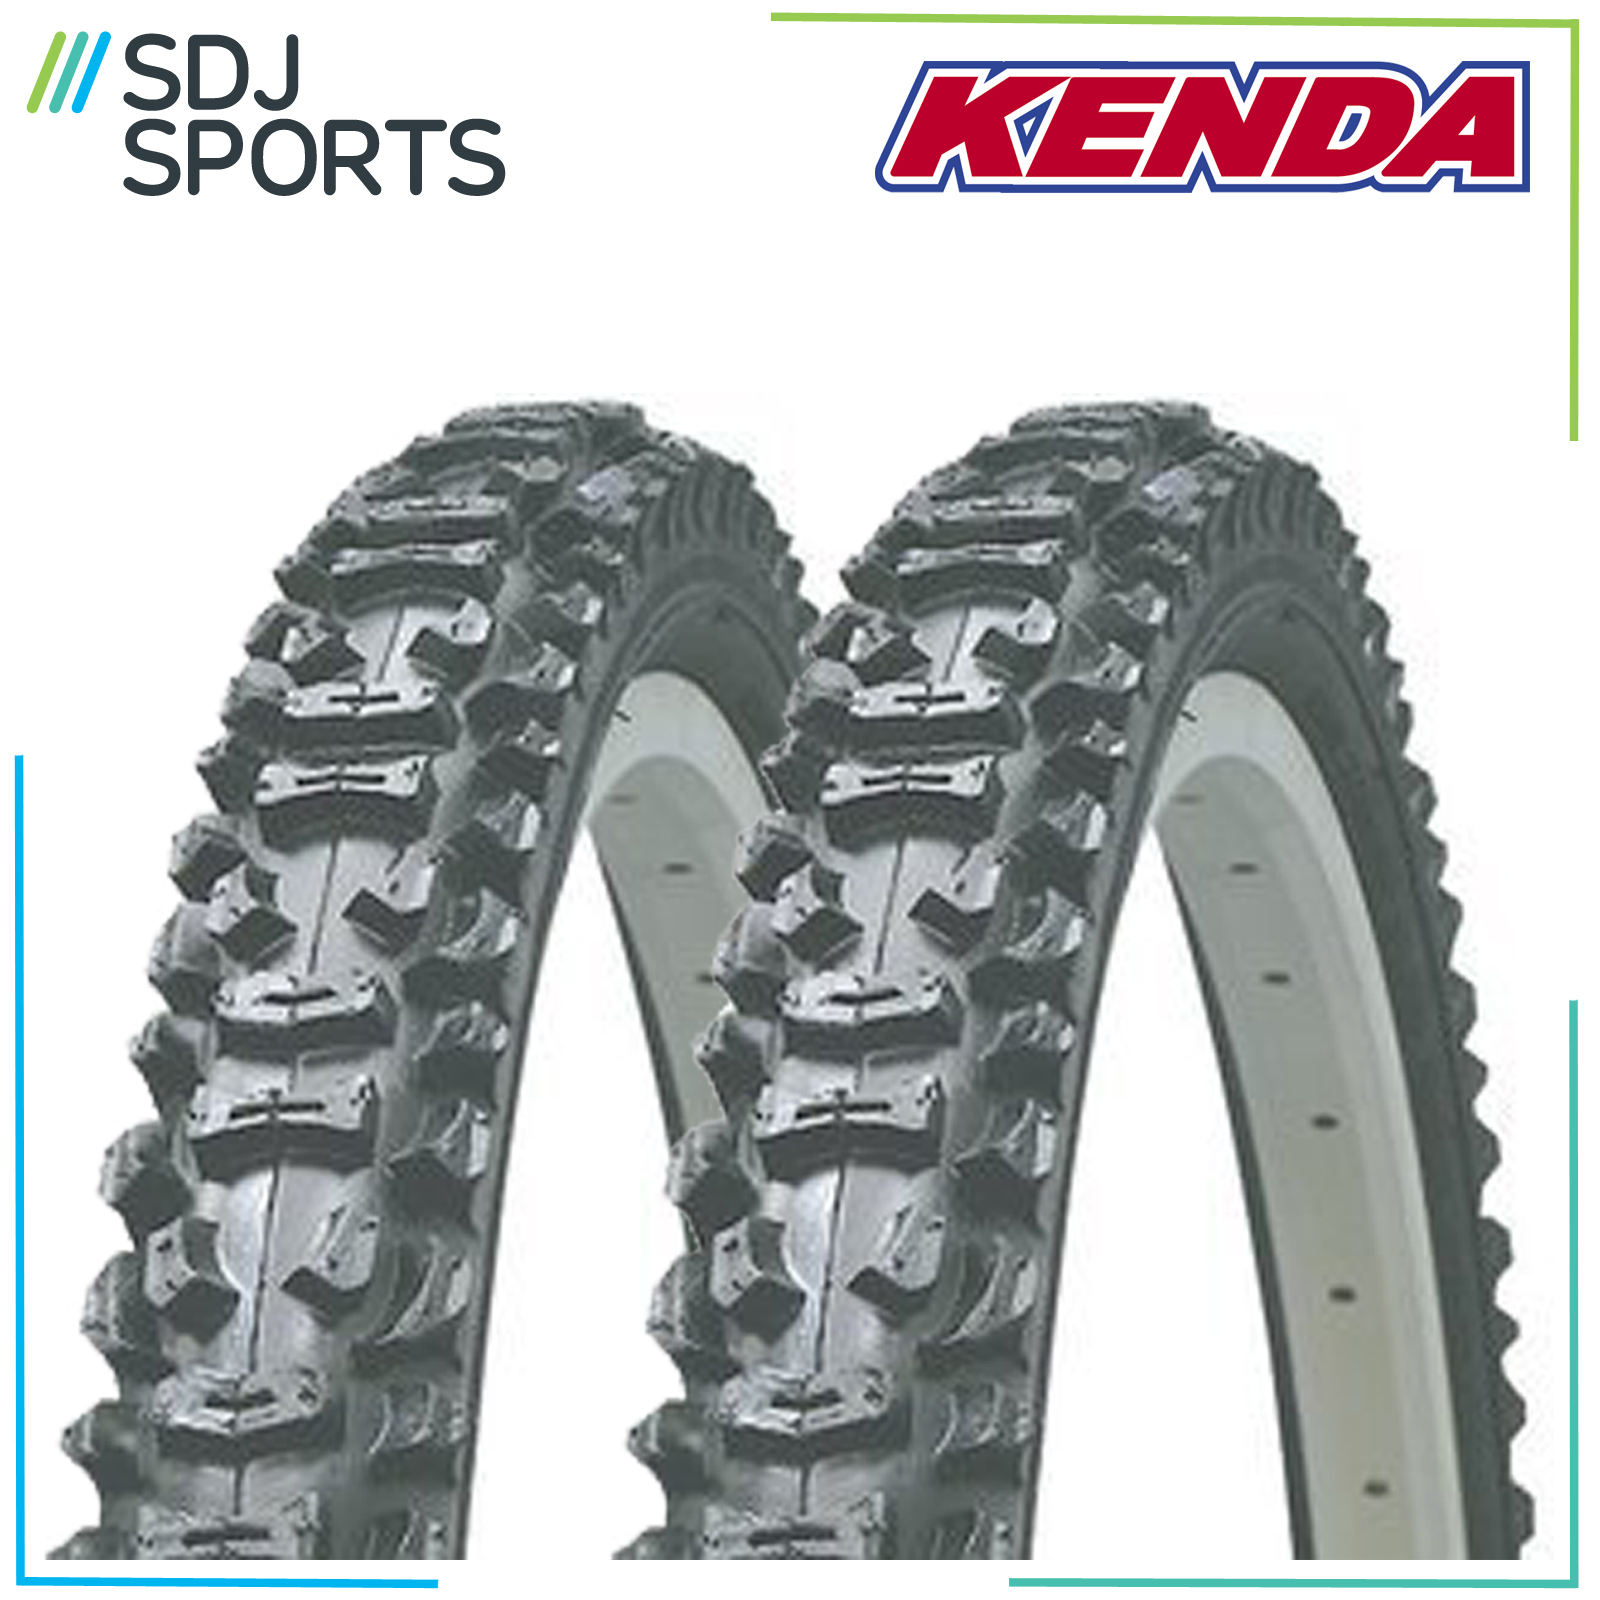 "2X Kenda Smoke 26"" X 1.95 Knobbly Mountain Bike Mtb 26 Inch"